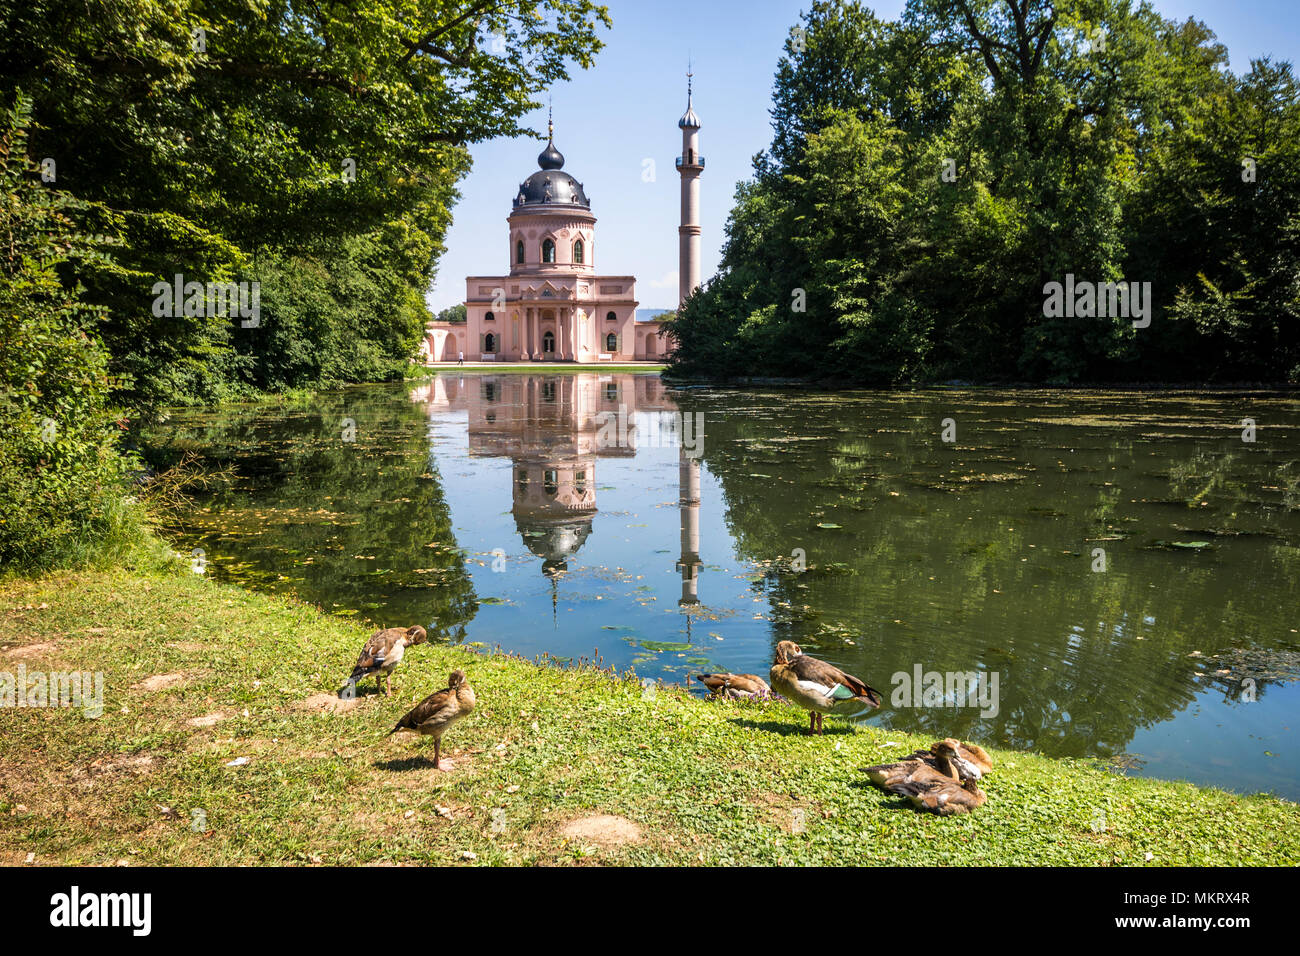 Schwetzingen, Germany. The Red Mosque (Rote Moschee) in the Schwetzingen Palace Gardens (Schwetzinger Schlossgarten) - Stock Image